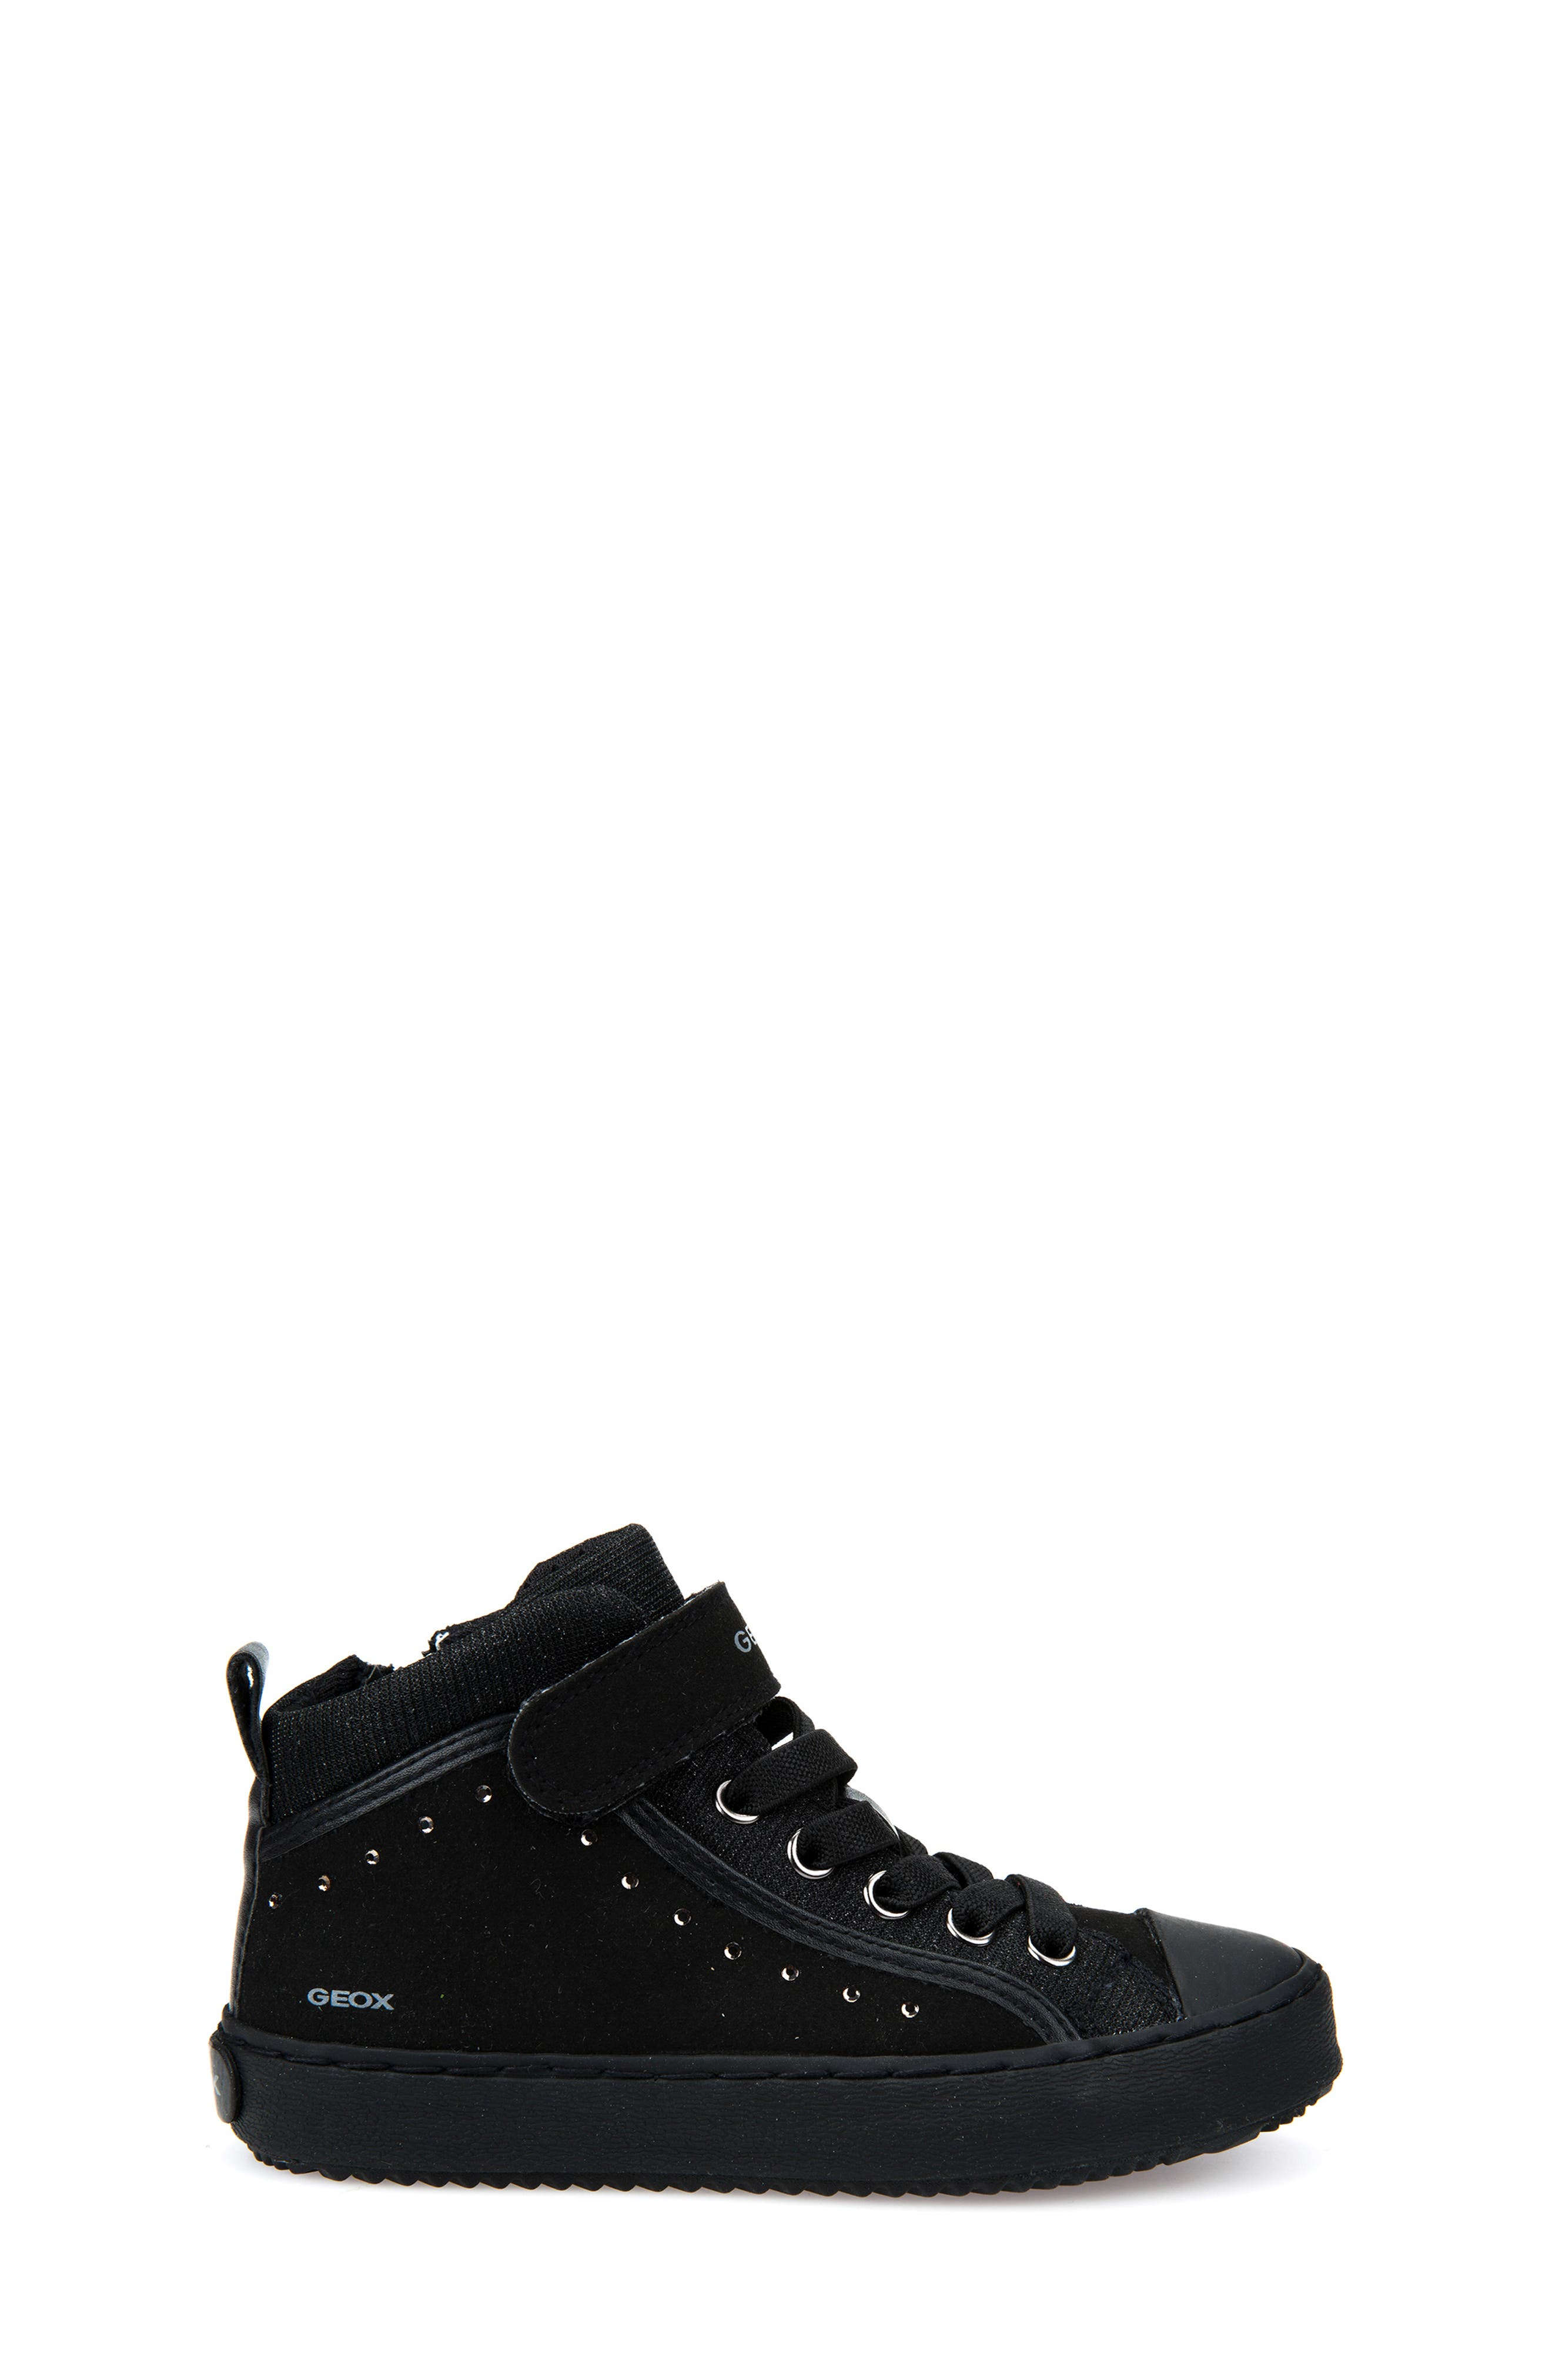 Kalispera High Top Sneaker,                             Alternate thumbnail 3, color,                             BLACK